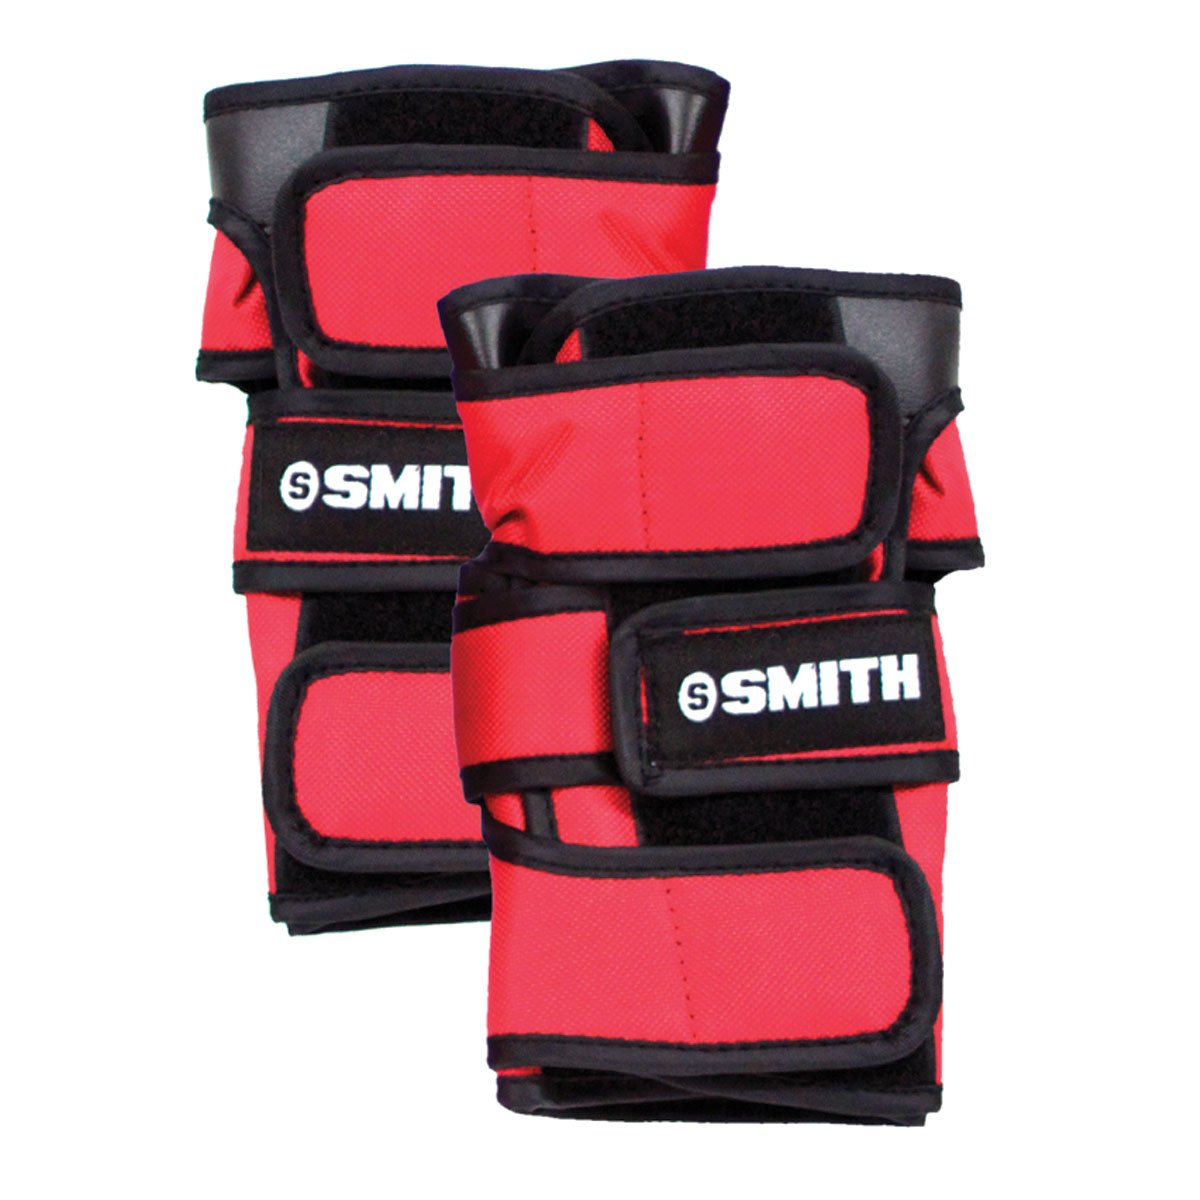 Smith Safety Gear Scabs Wrist Guards, Red, X-Large by Smith Safety Gear